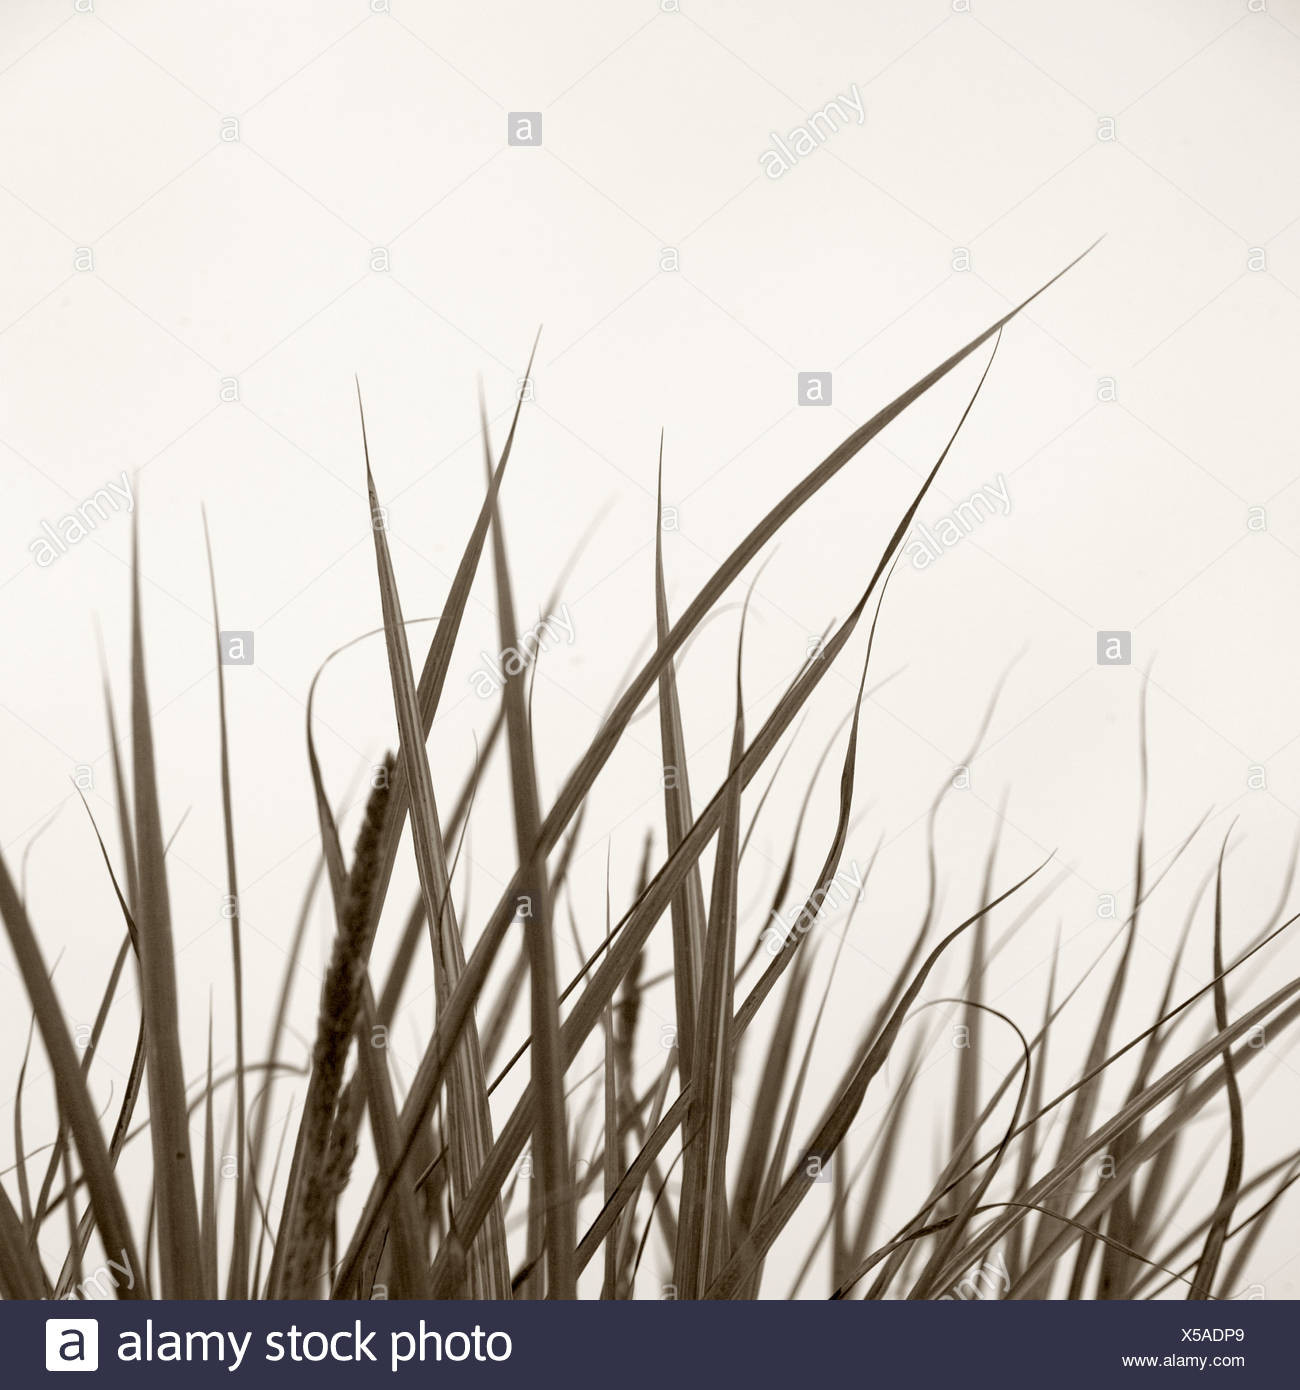 tall grass silhouette. Tall Grass - Stock Image Silhouette